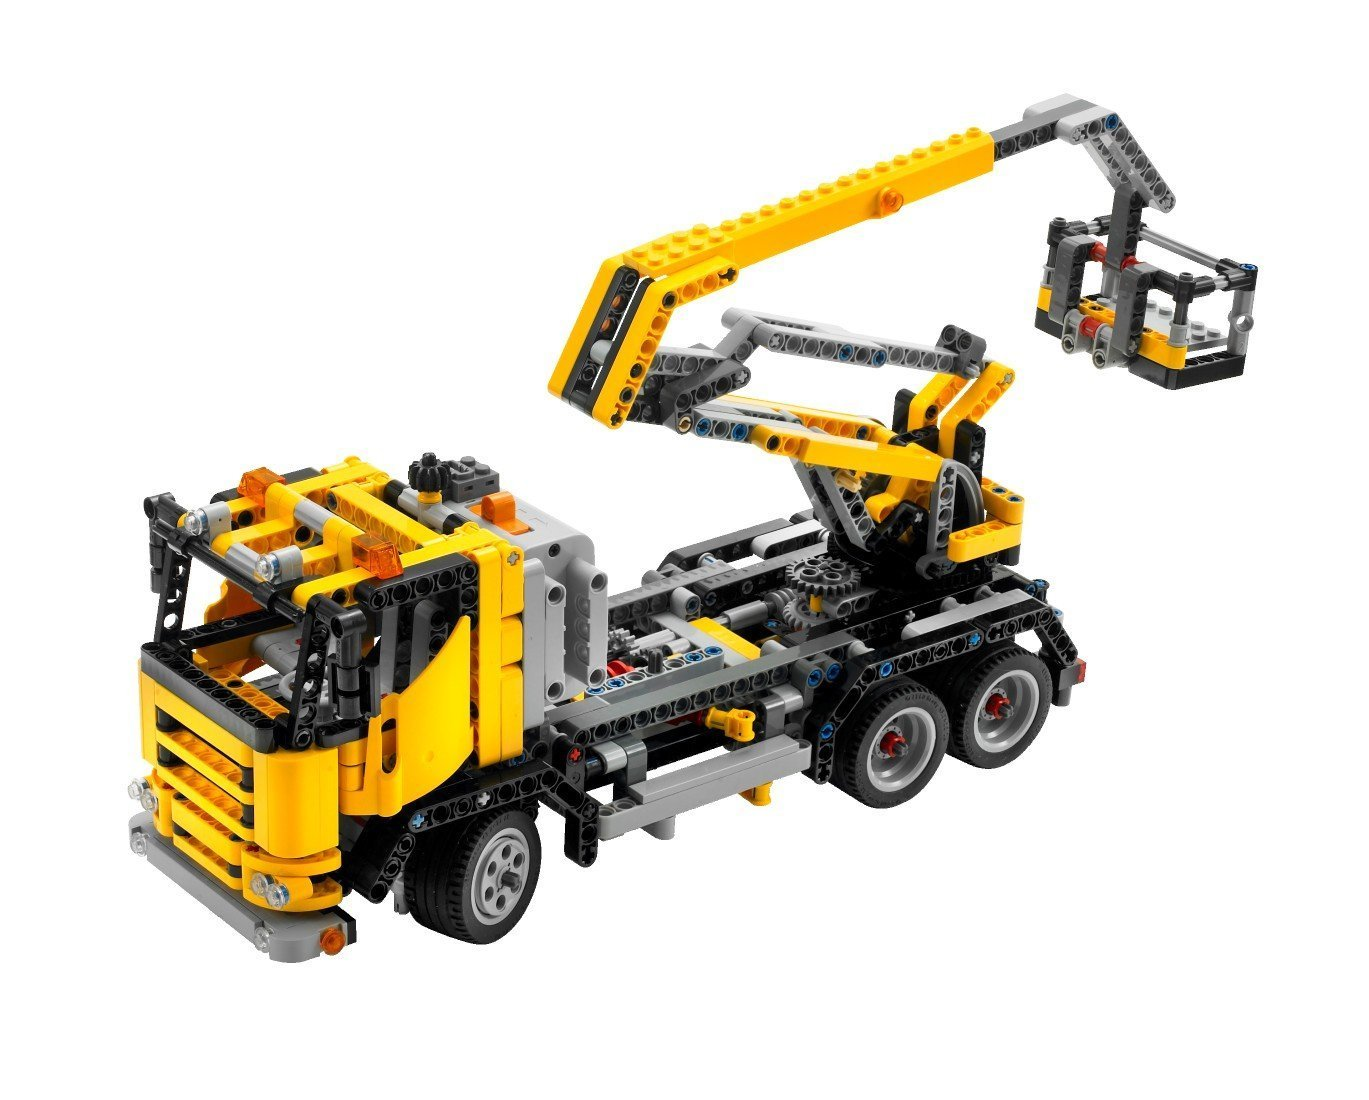 Cherry Picker 169186 LEGO Technic 8292